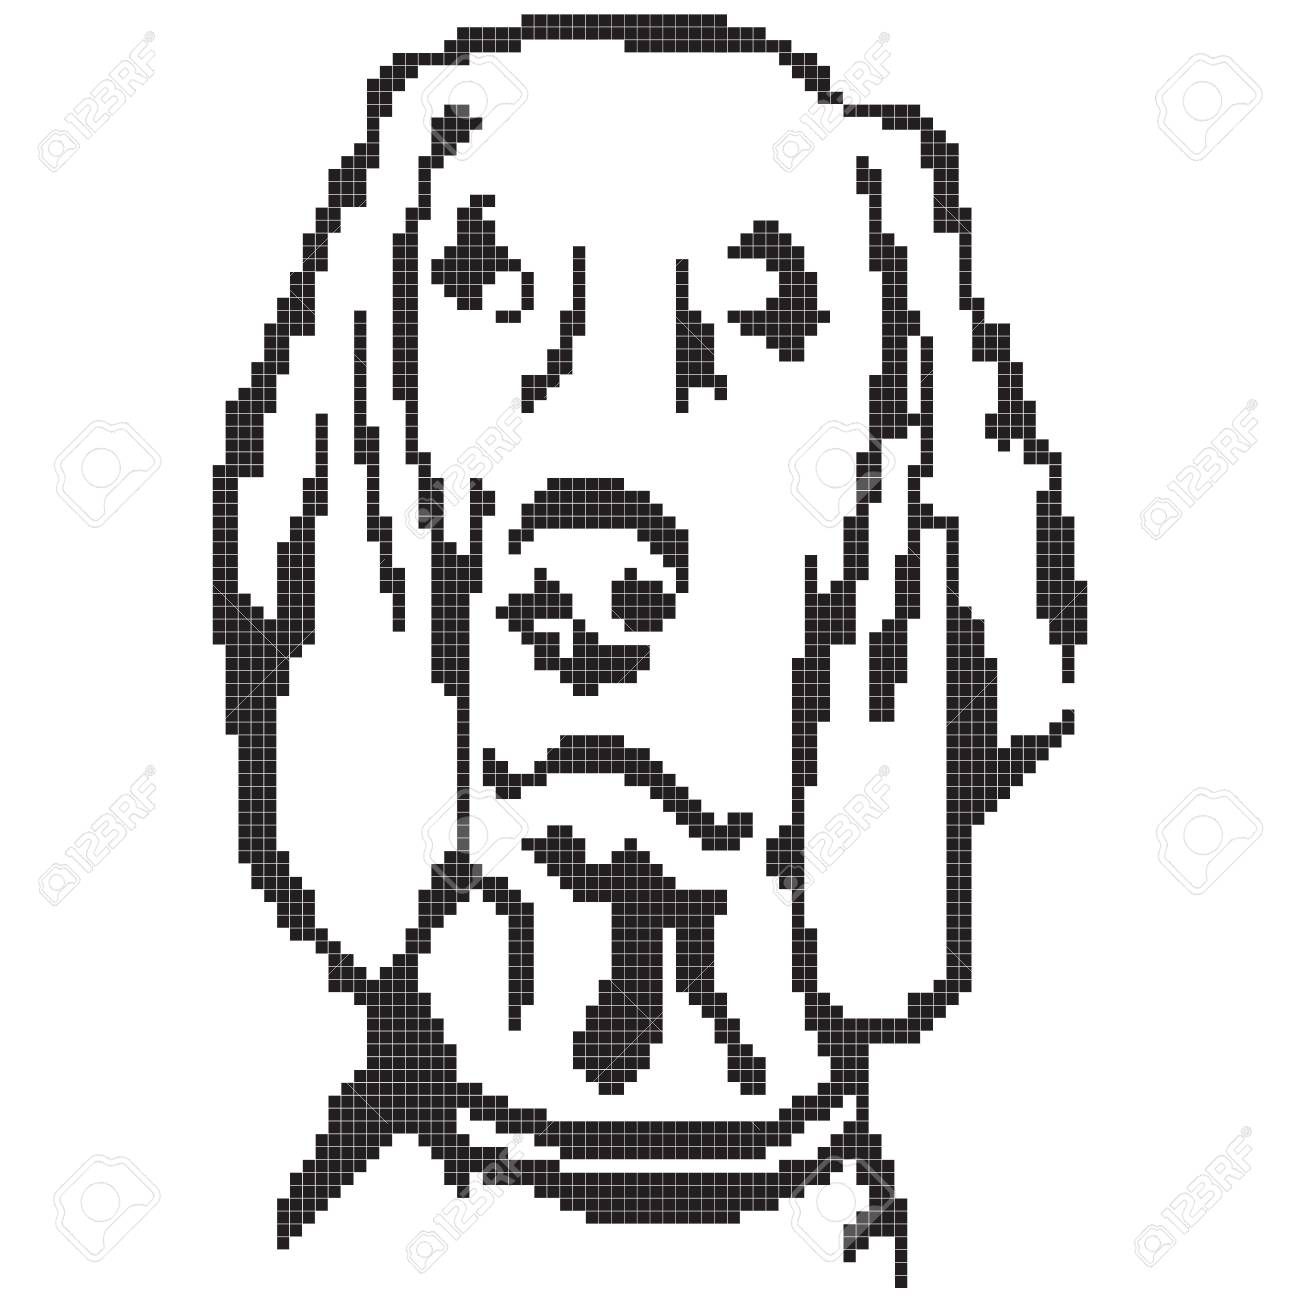 A Labrador Dog Painted With Pixels Vector Illustration